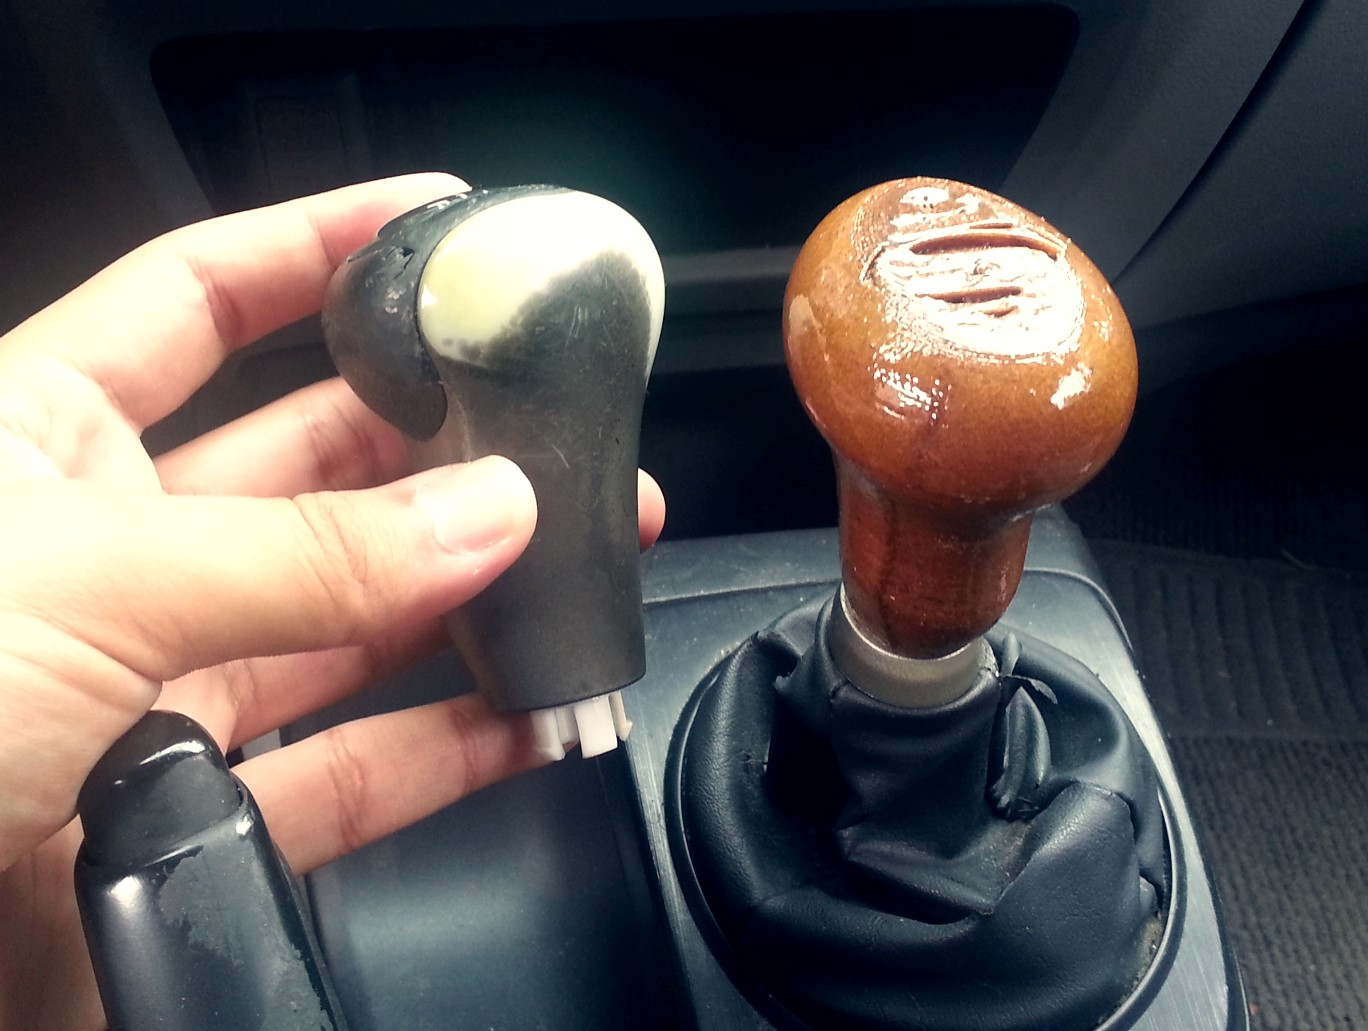 Customized 3D Printed Gear Shift Knobs